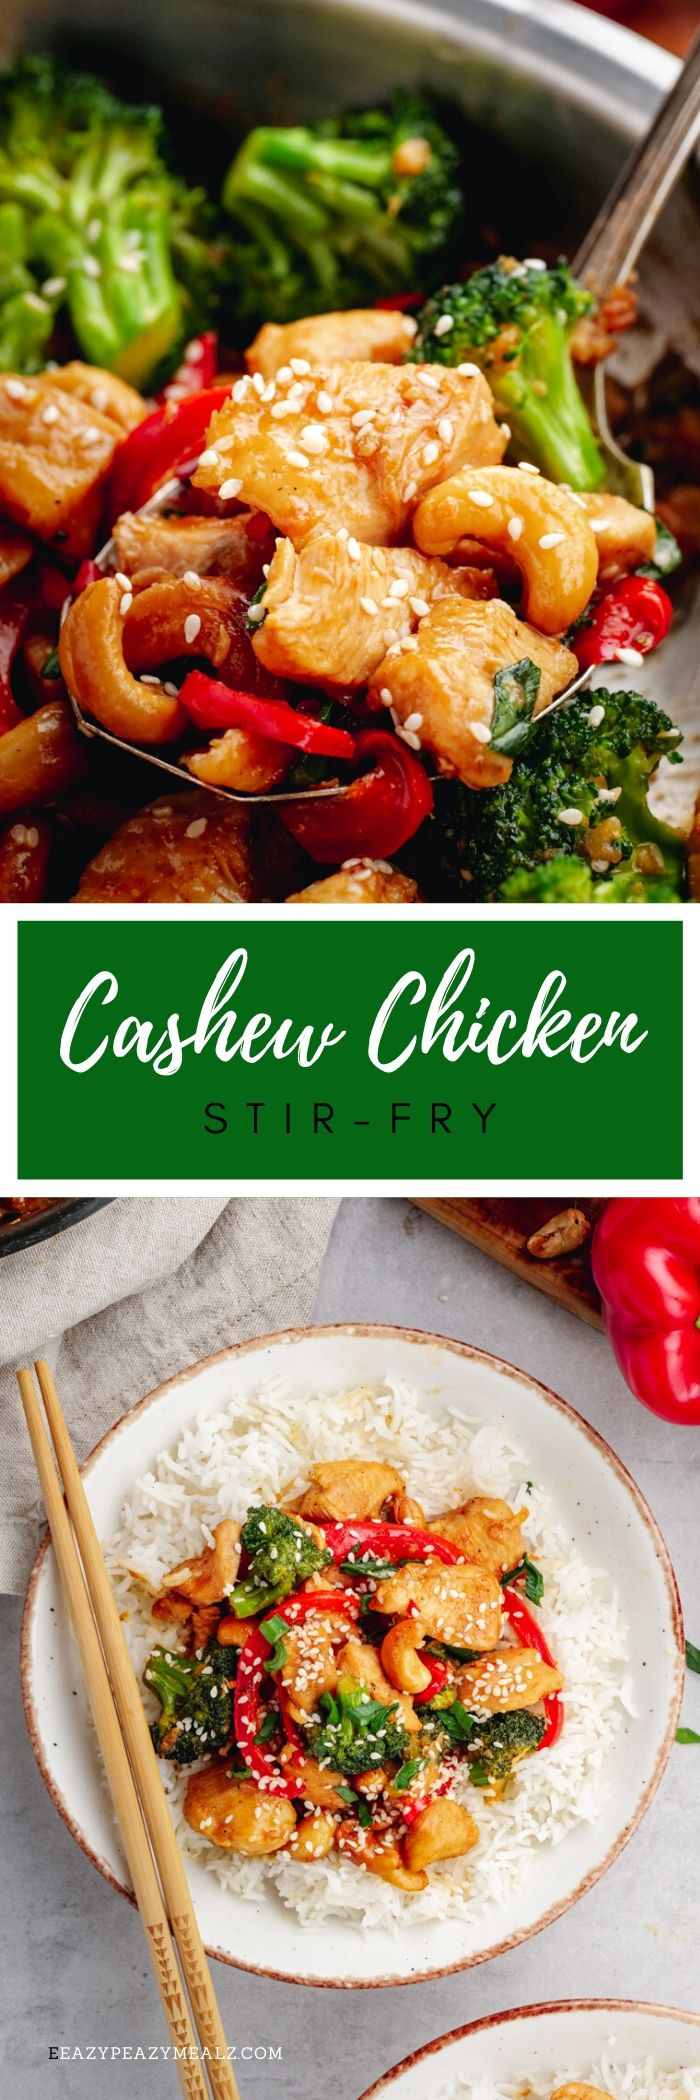 An image with two photos and text between. Top photo is a close up of cashew chicken in a spoon, bottom photo is cashew chicken on a white plate with chop sticks, cashew chicken on top of rice. Text between is white on a green background and it says cashew chicken